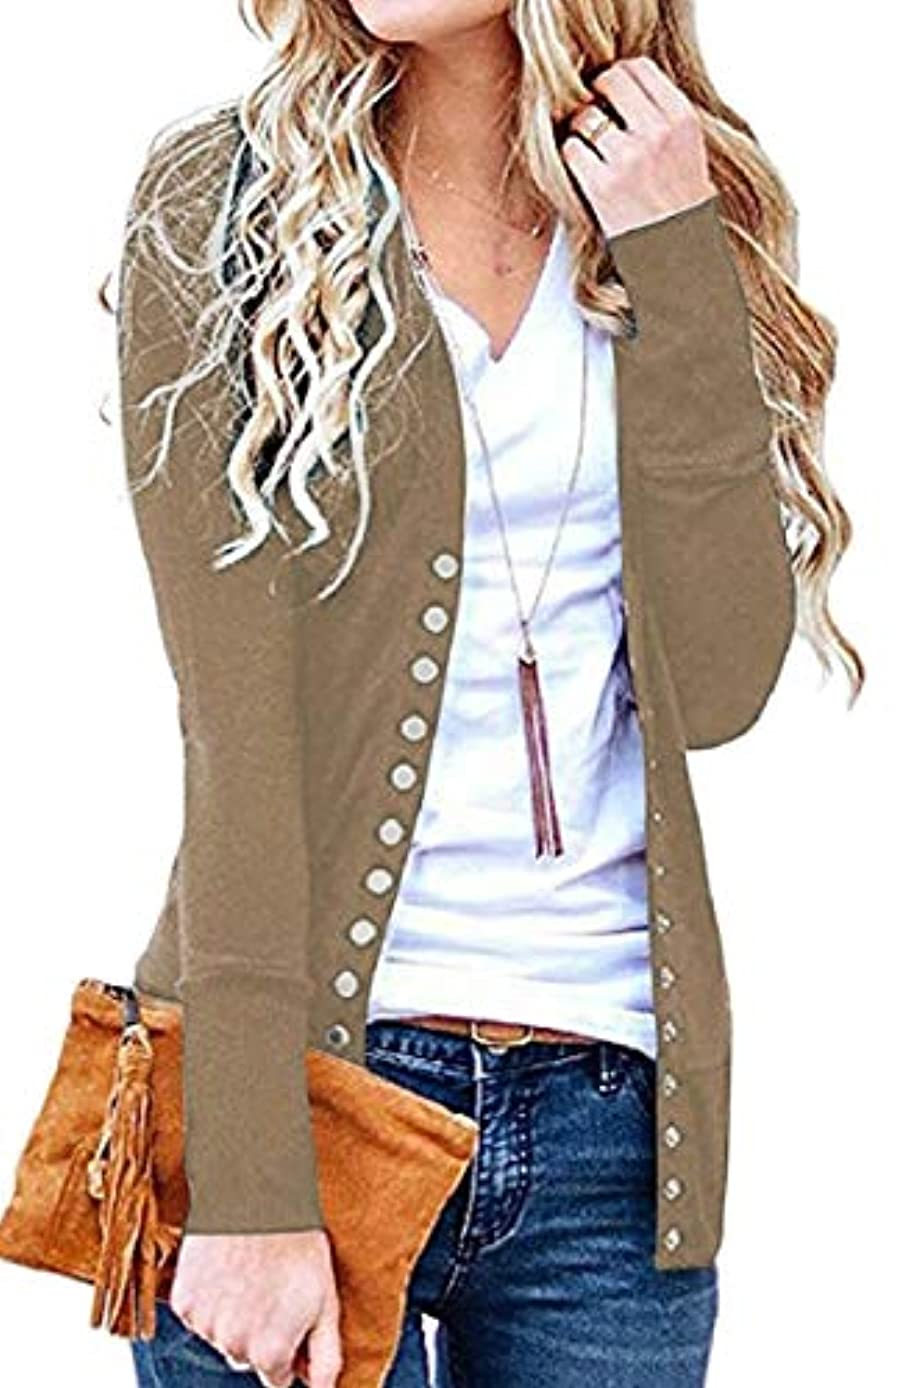 FLCH+YIGE Womens Casual Snap Button Front Knitwear Stretchy Slim Cardigan Jackets